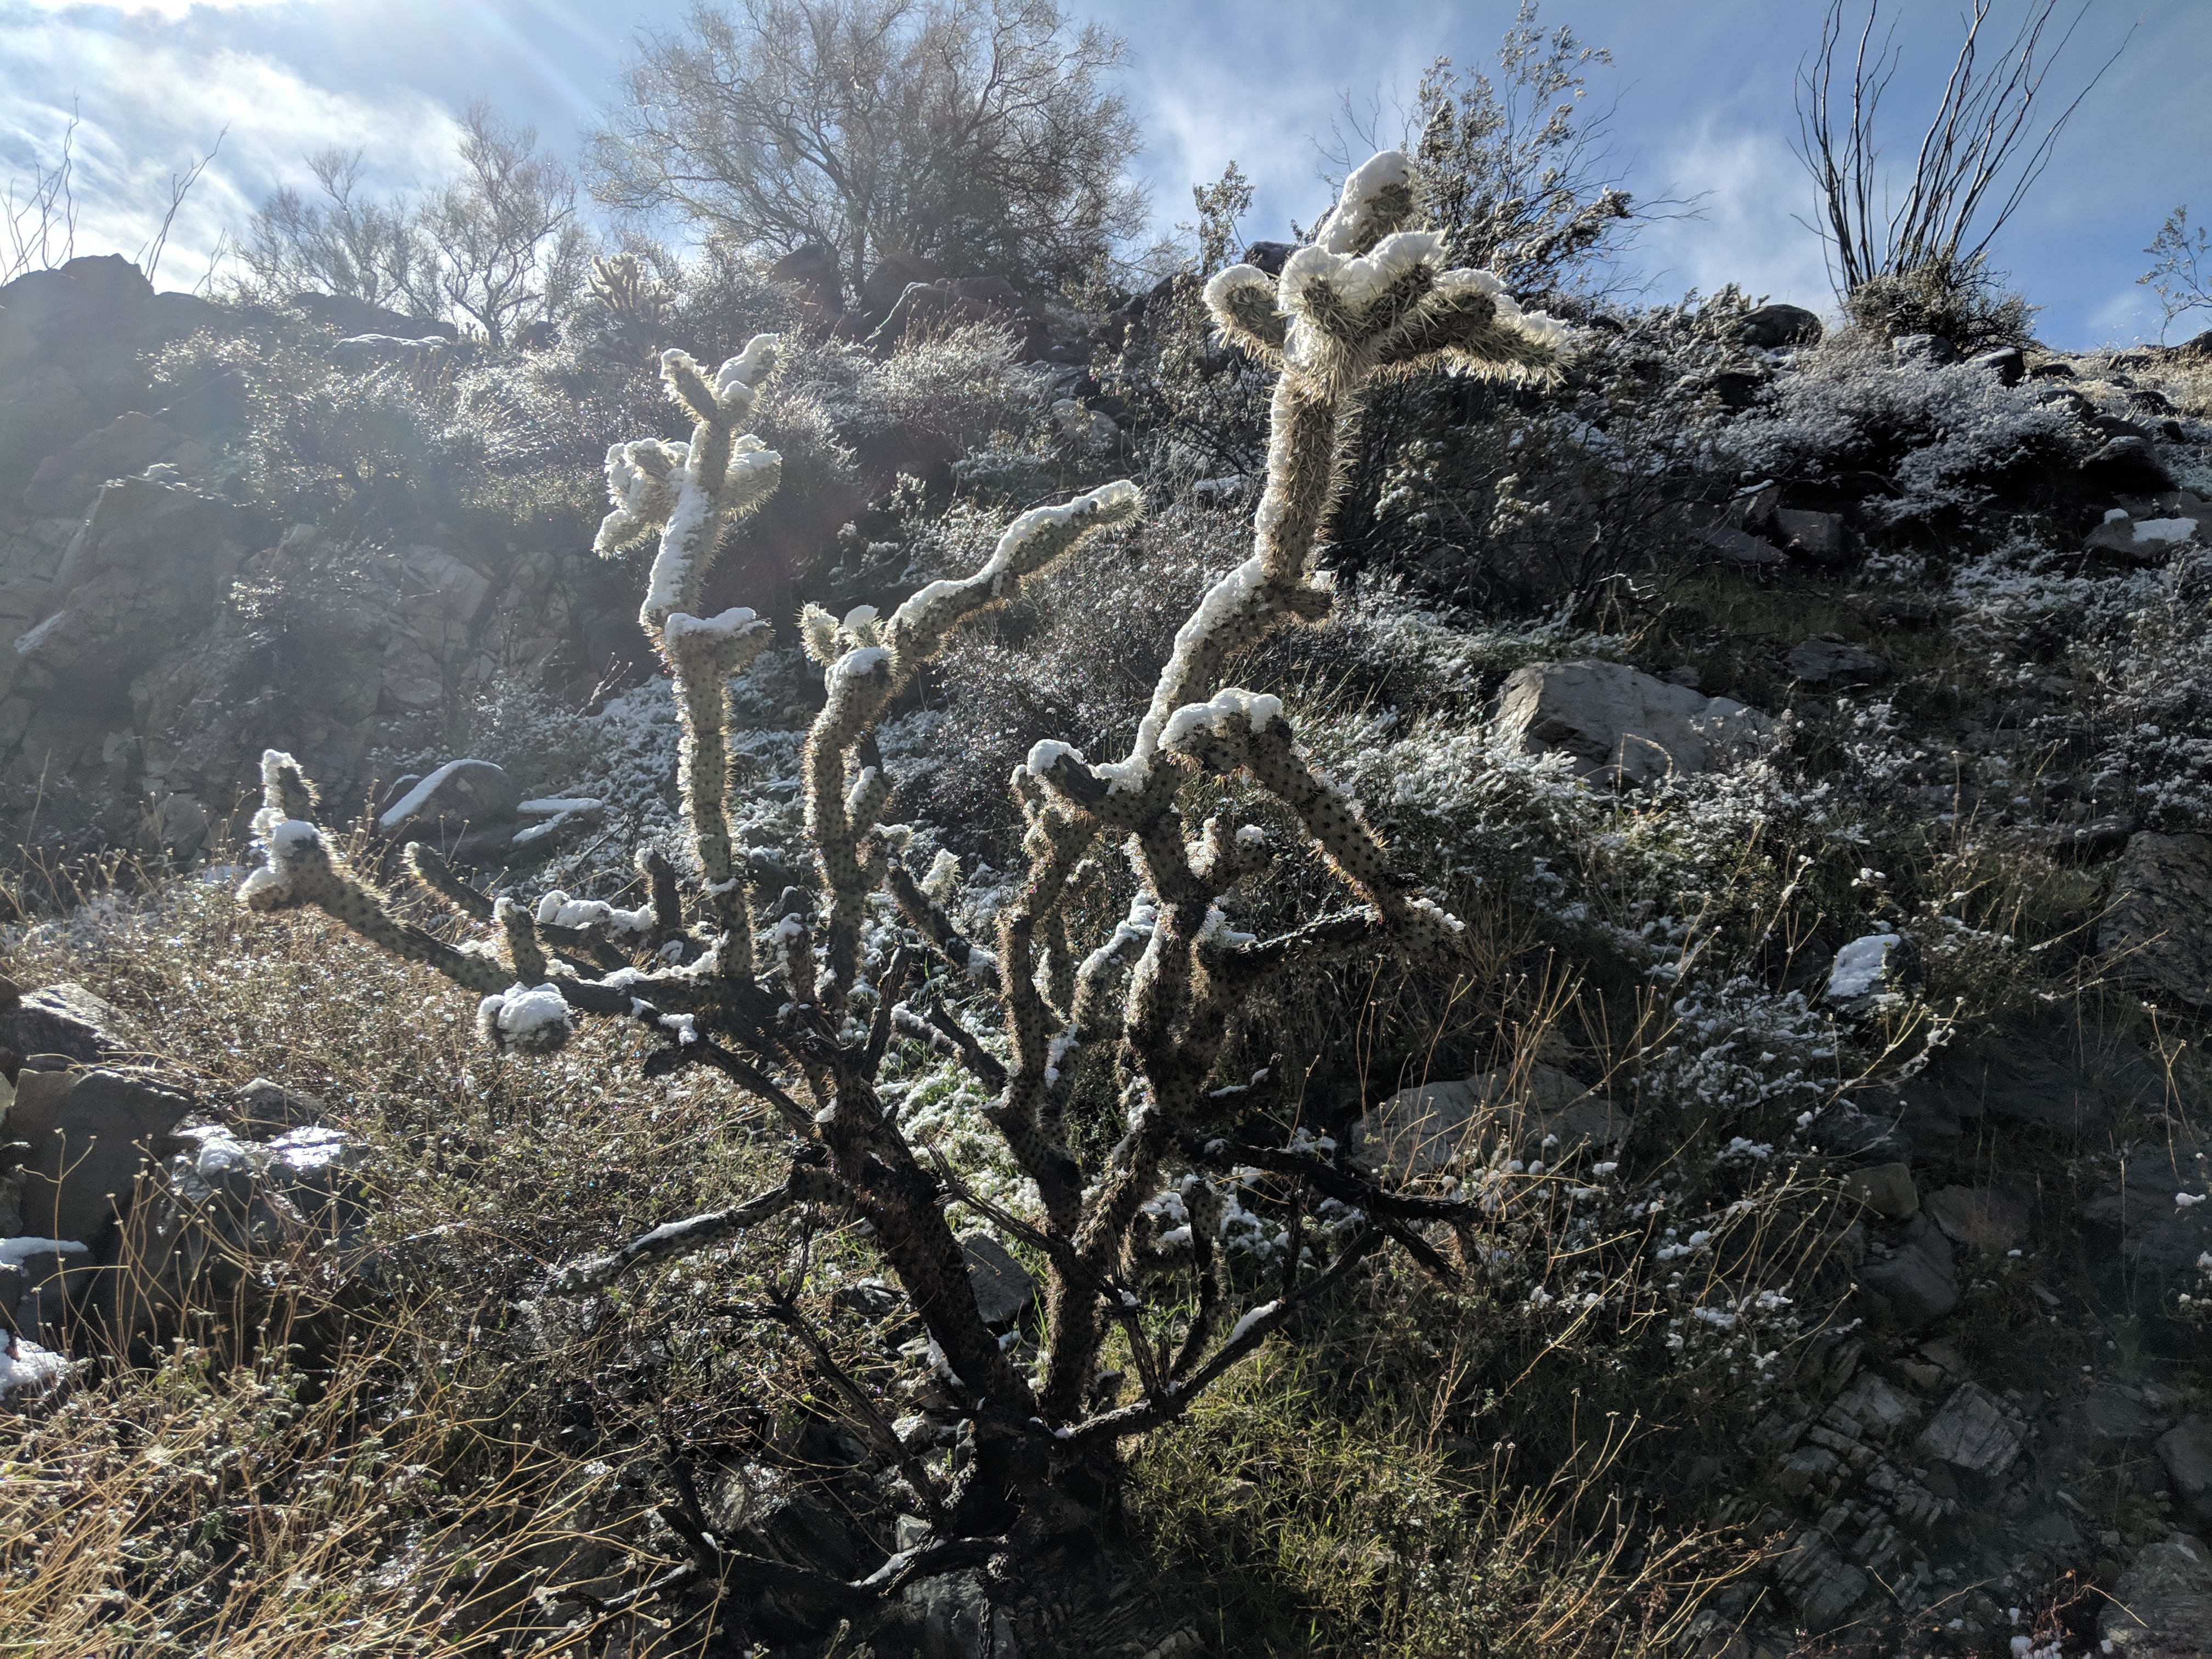 Cactus covered in snow at Lake Havasu City